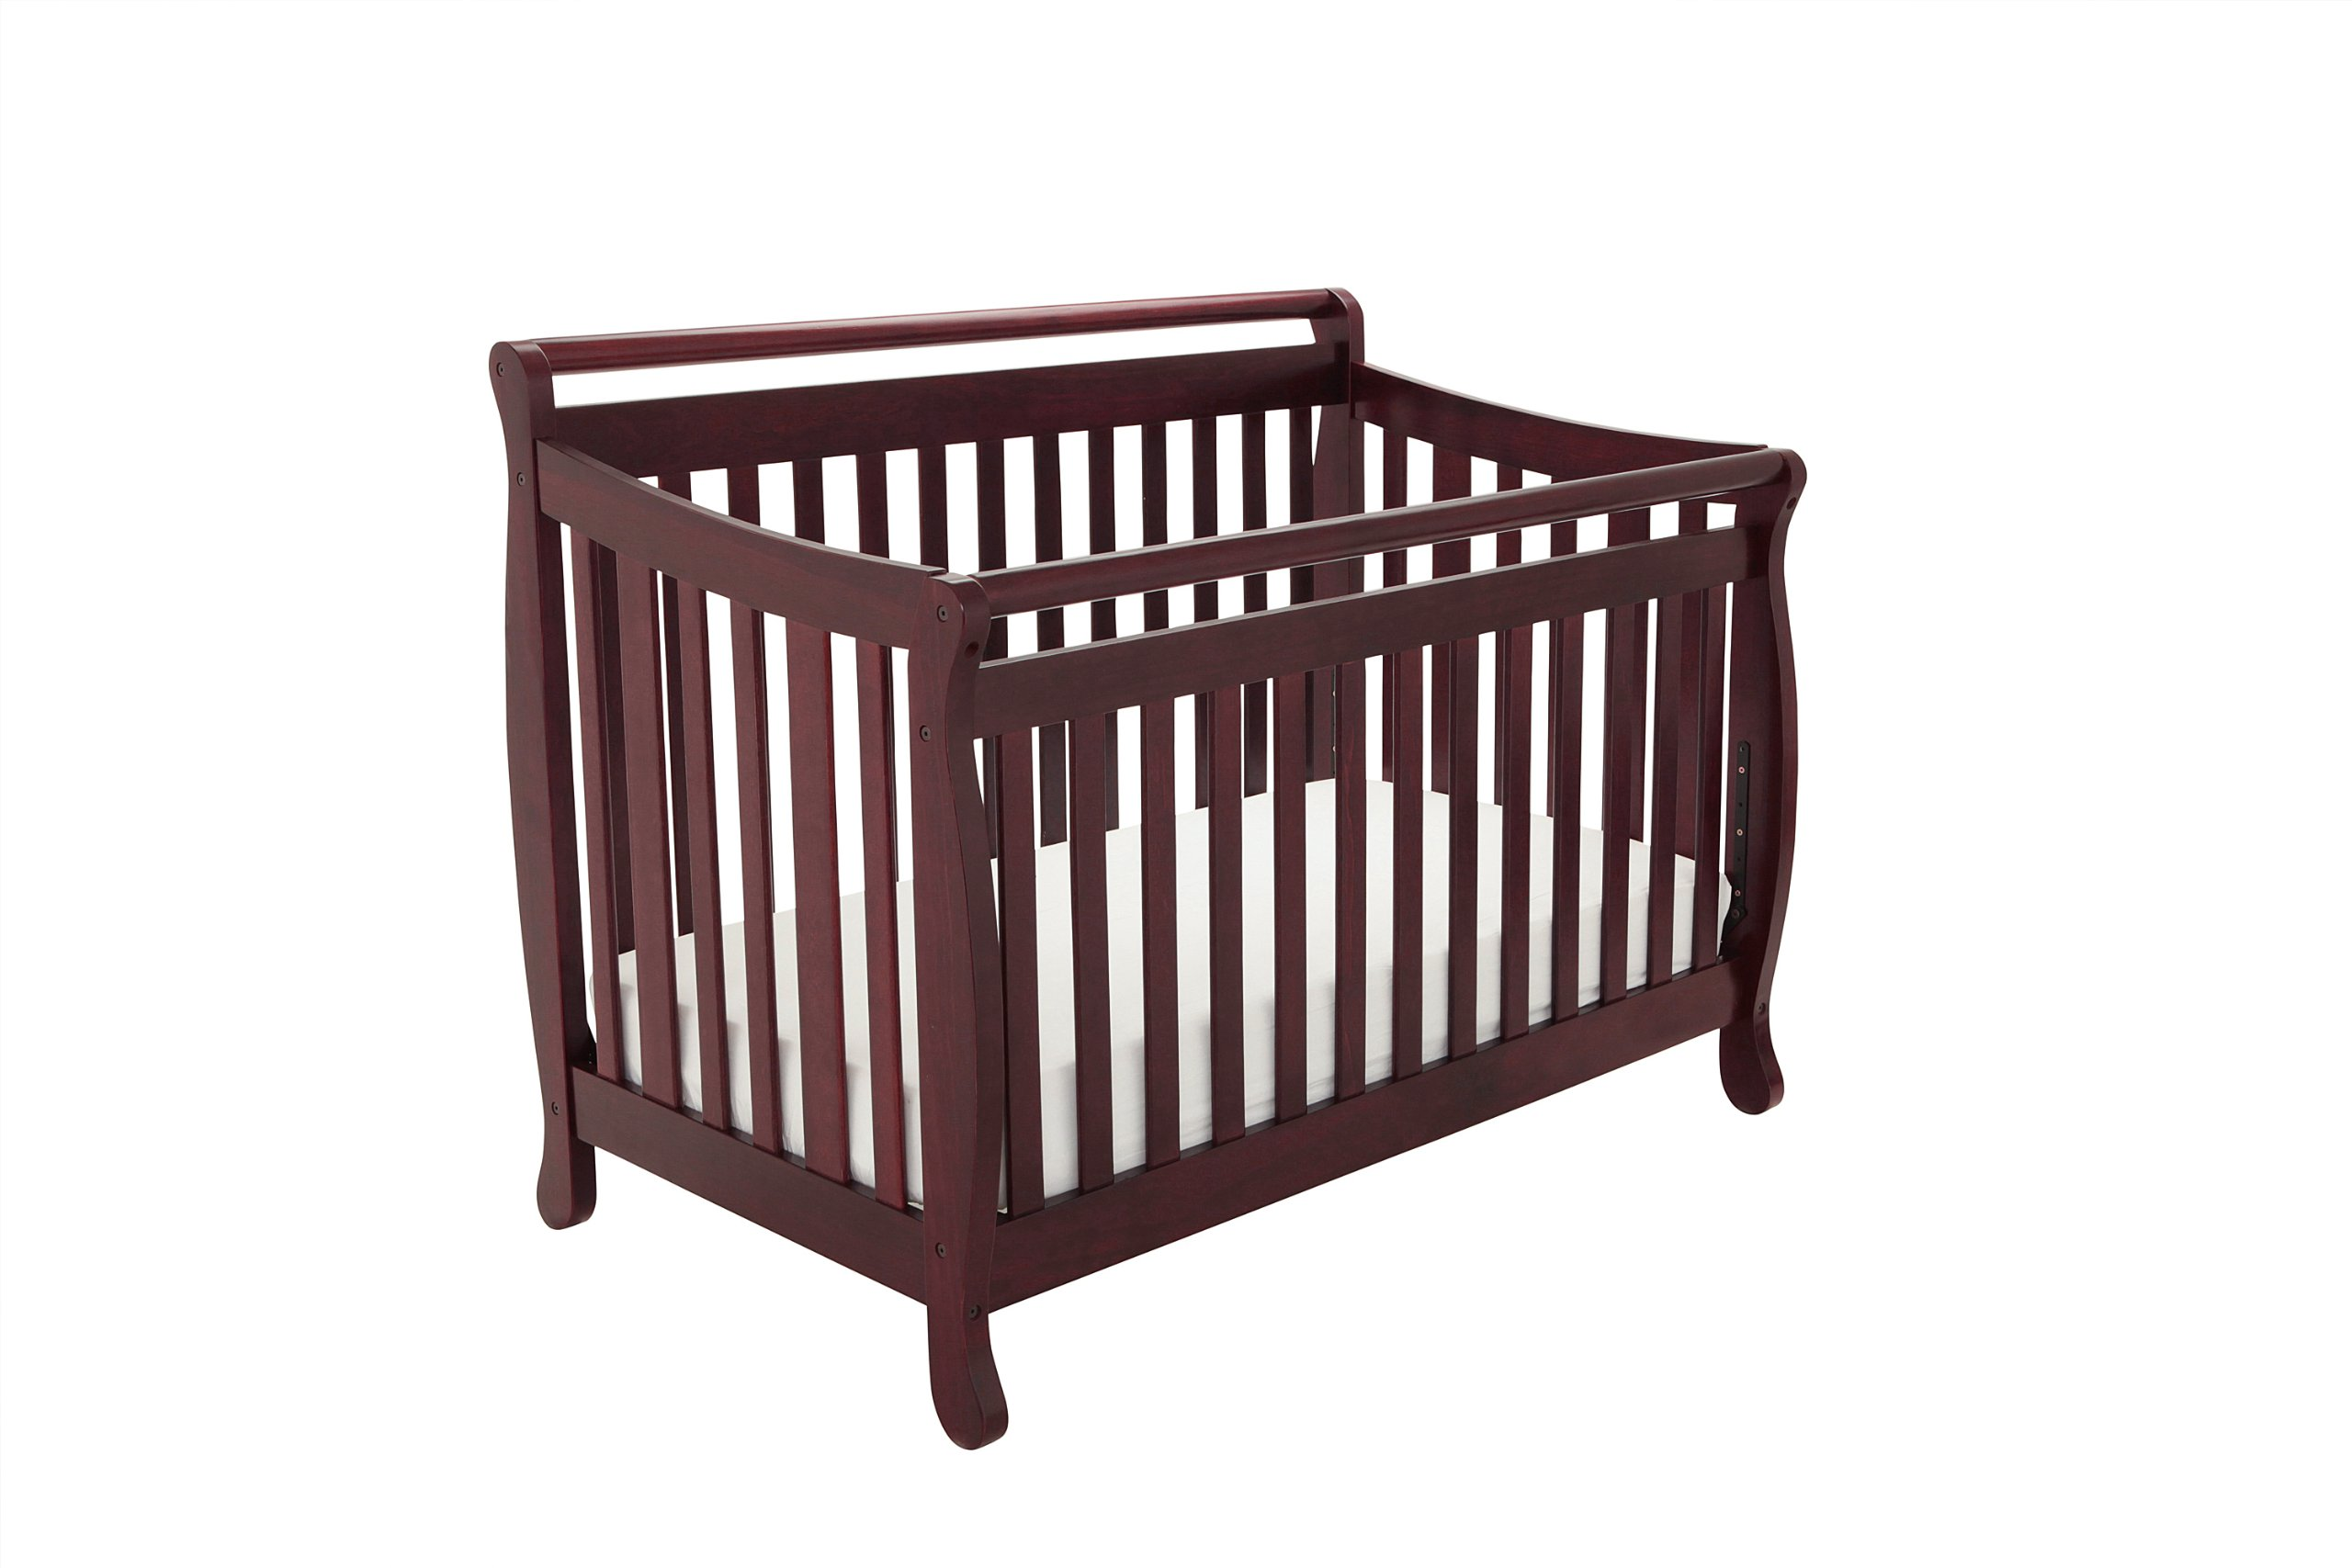 Athena Amy 3 in 1 Crib with Toddler Rail, Cherry by Athena